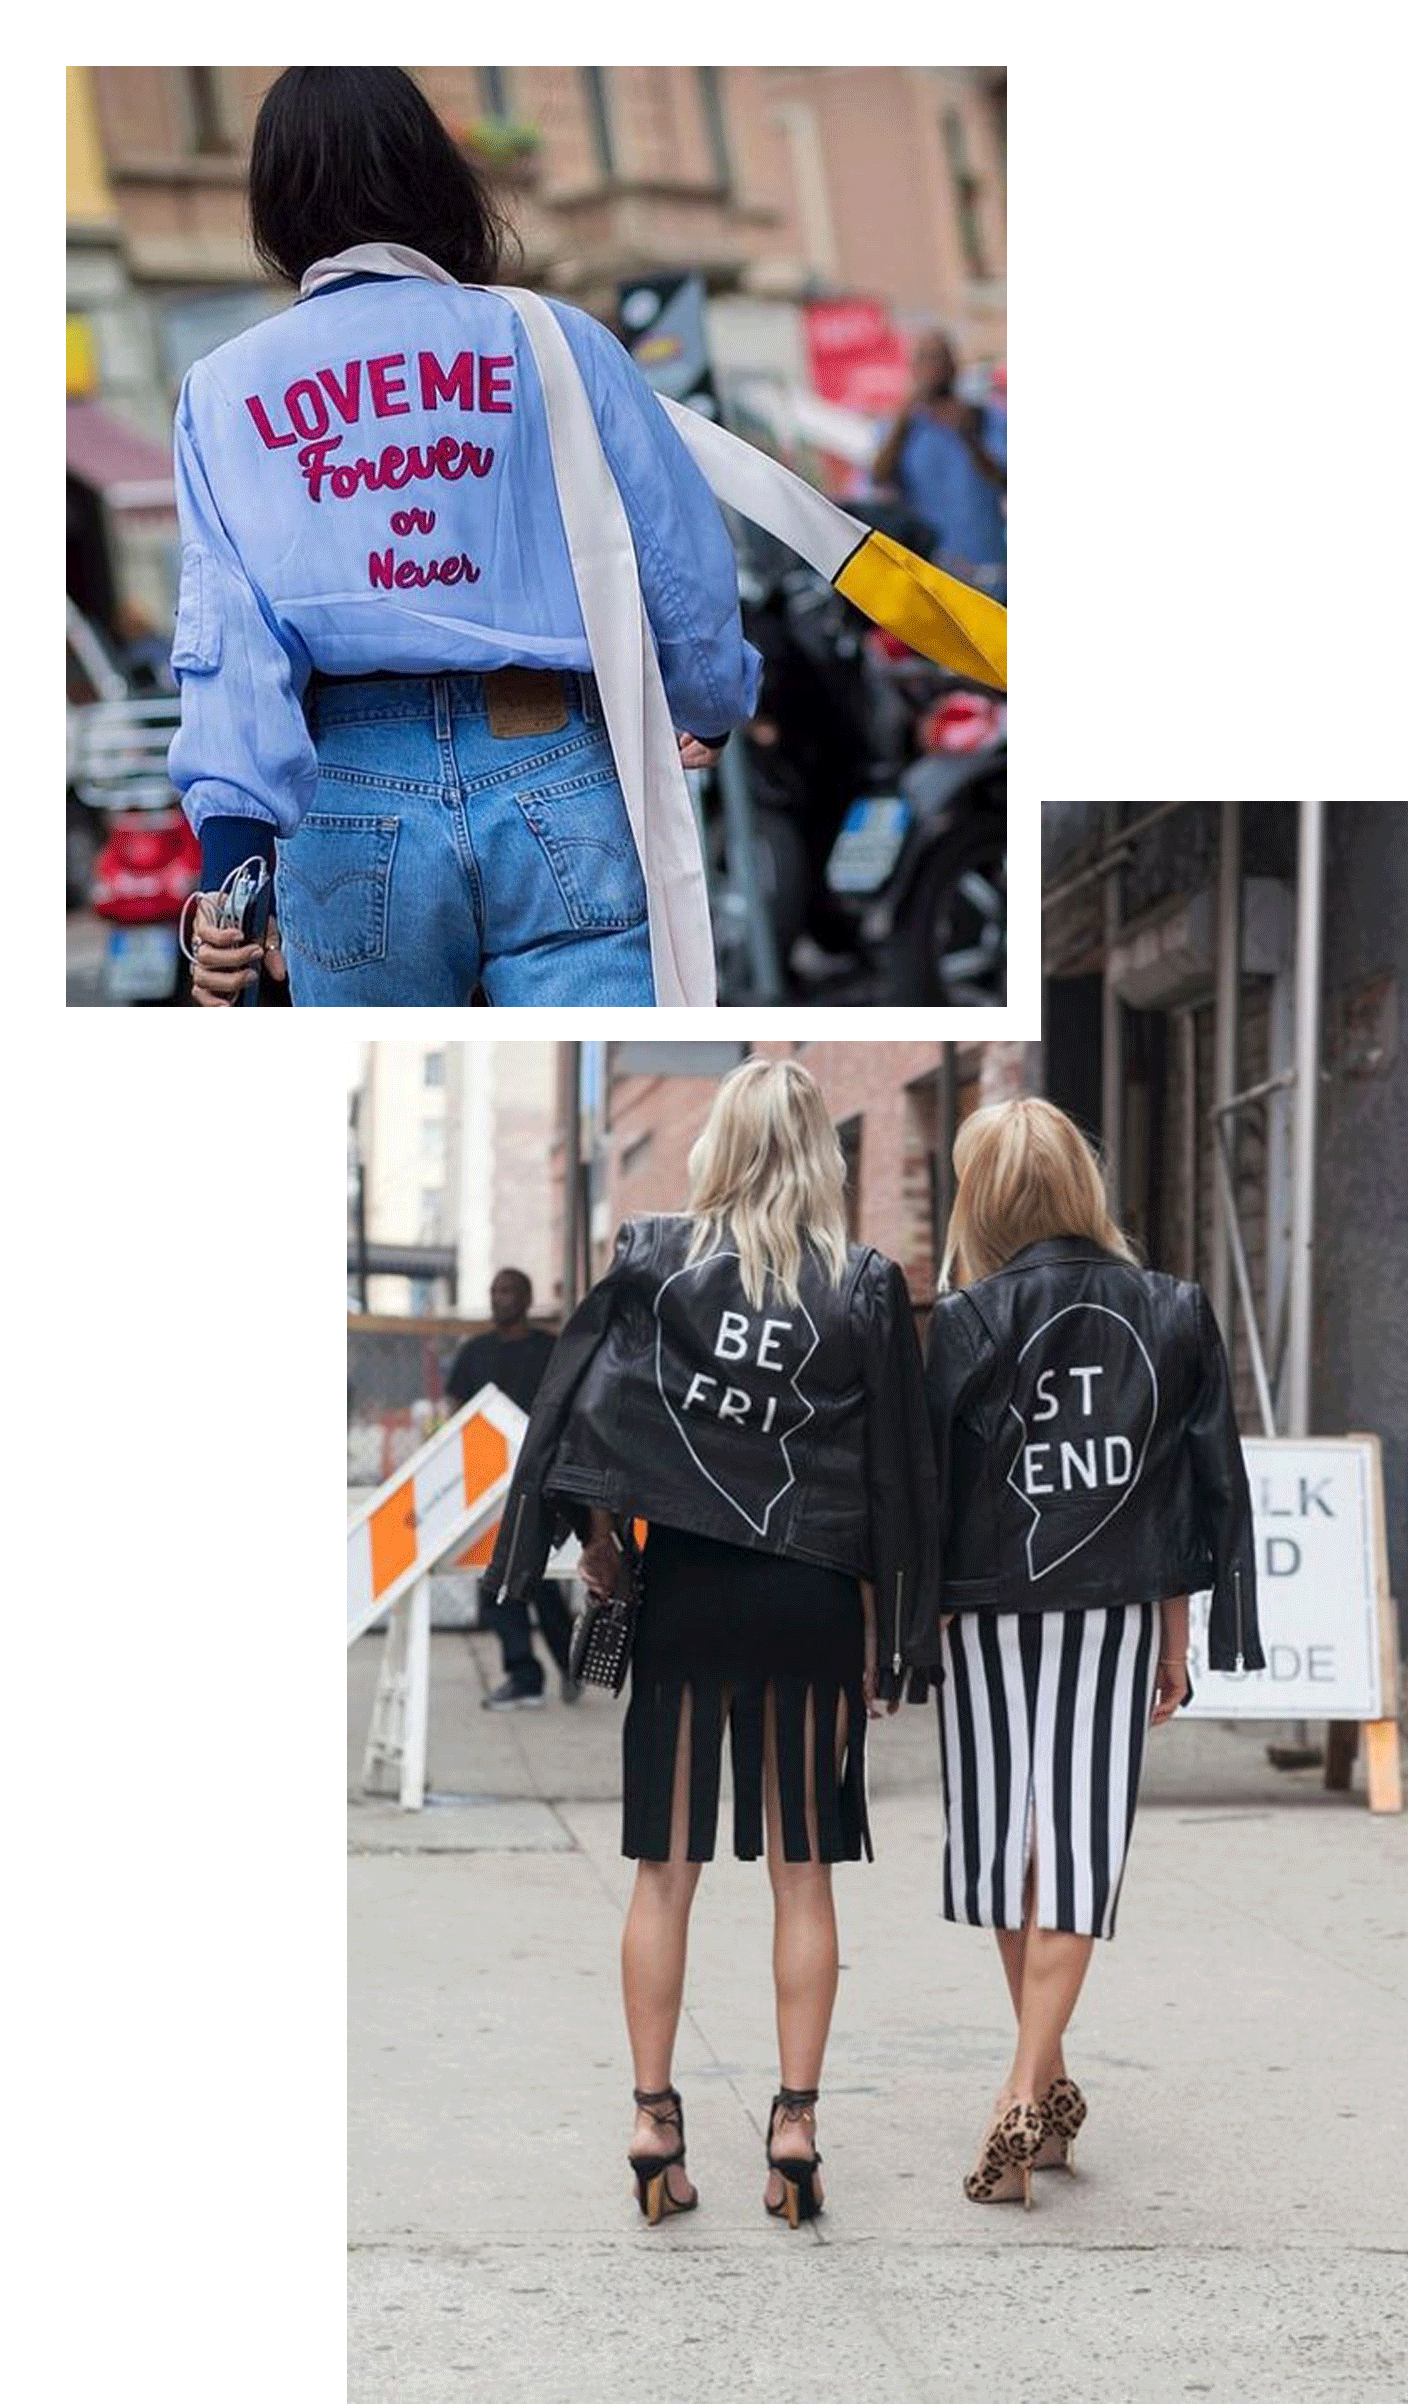 jackets with words | @themissprints